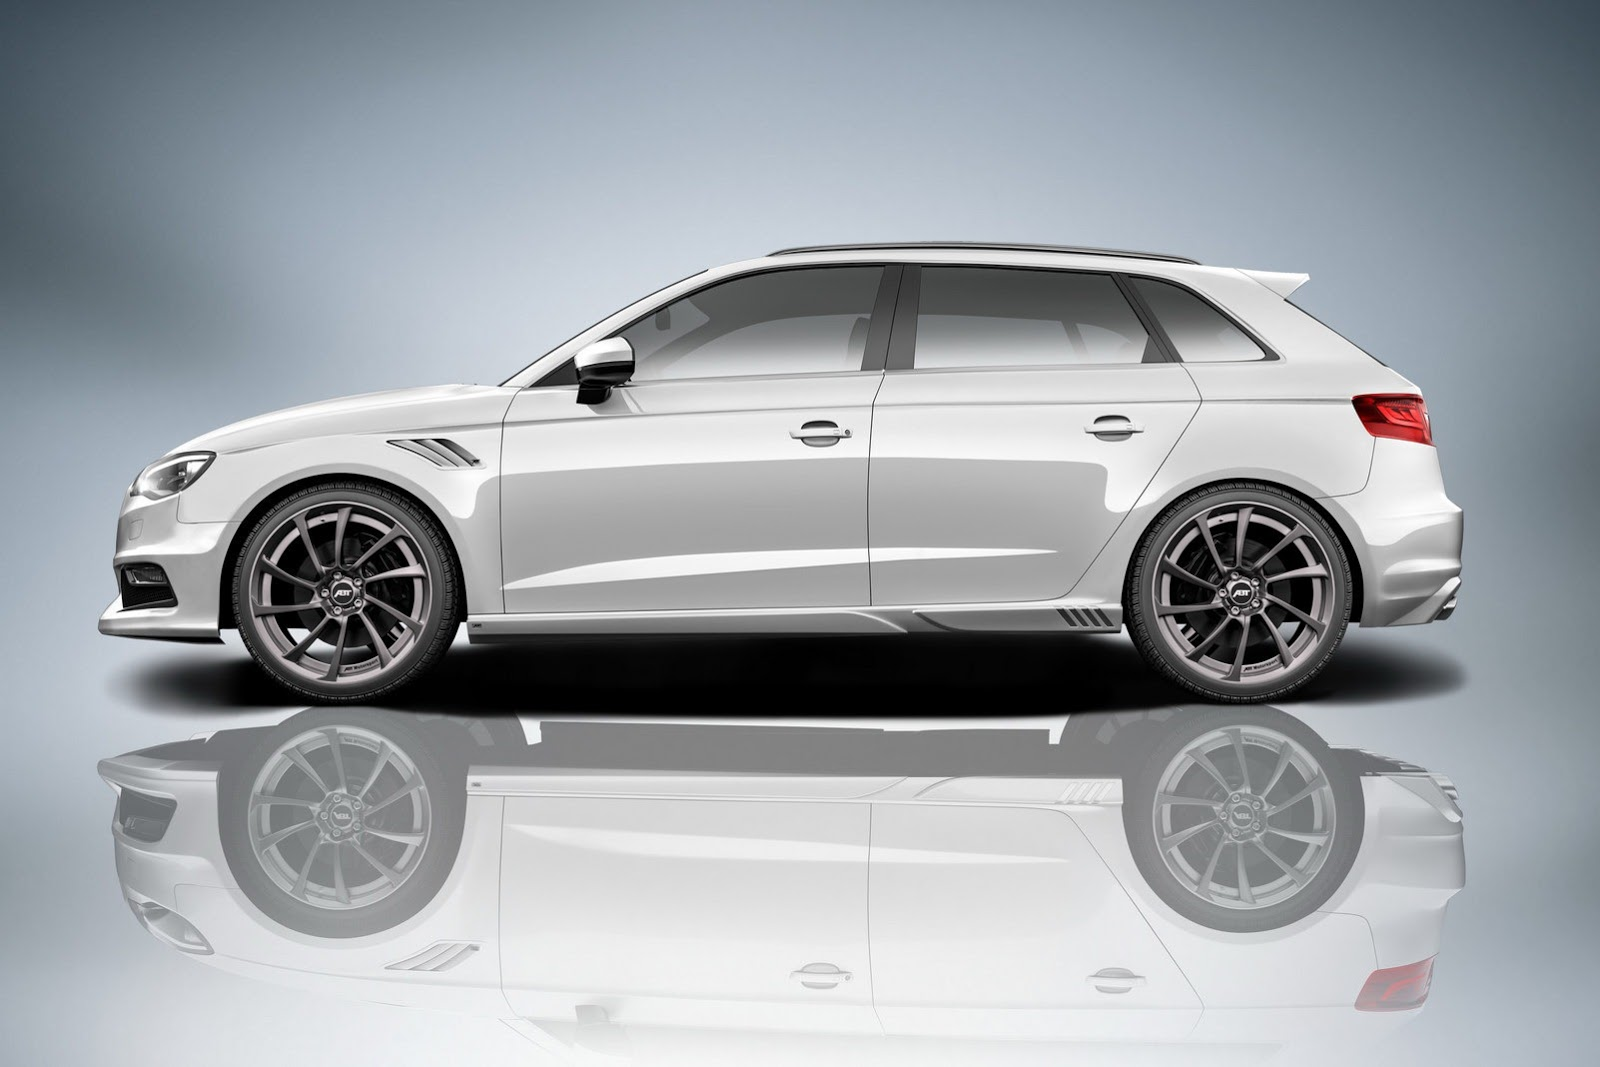 Audi Q3 Next Generation >> 2013 Audi A3 Sportback Tuned by ABT - autoevolution